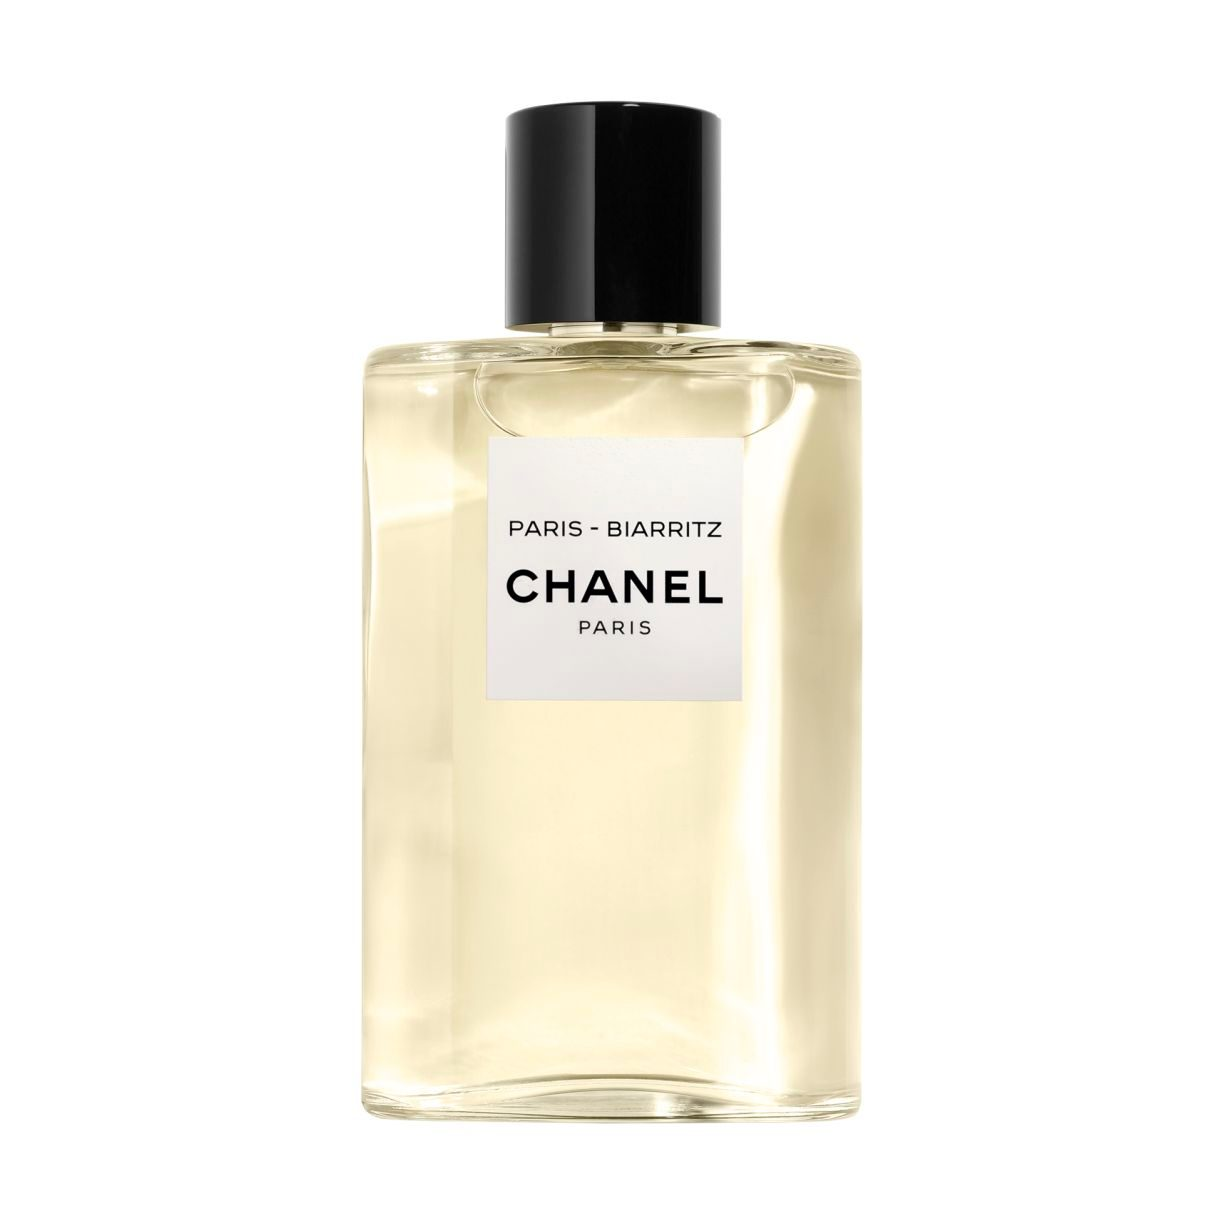 PARIS - BIARRITZ LES EAUX DE CHANEL - EAU DE TOILETTE SPRAY 125ml